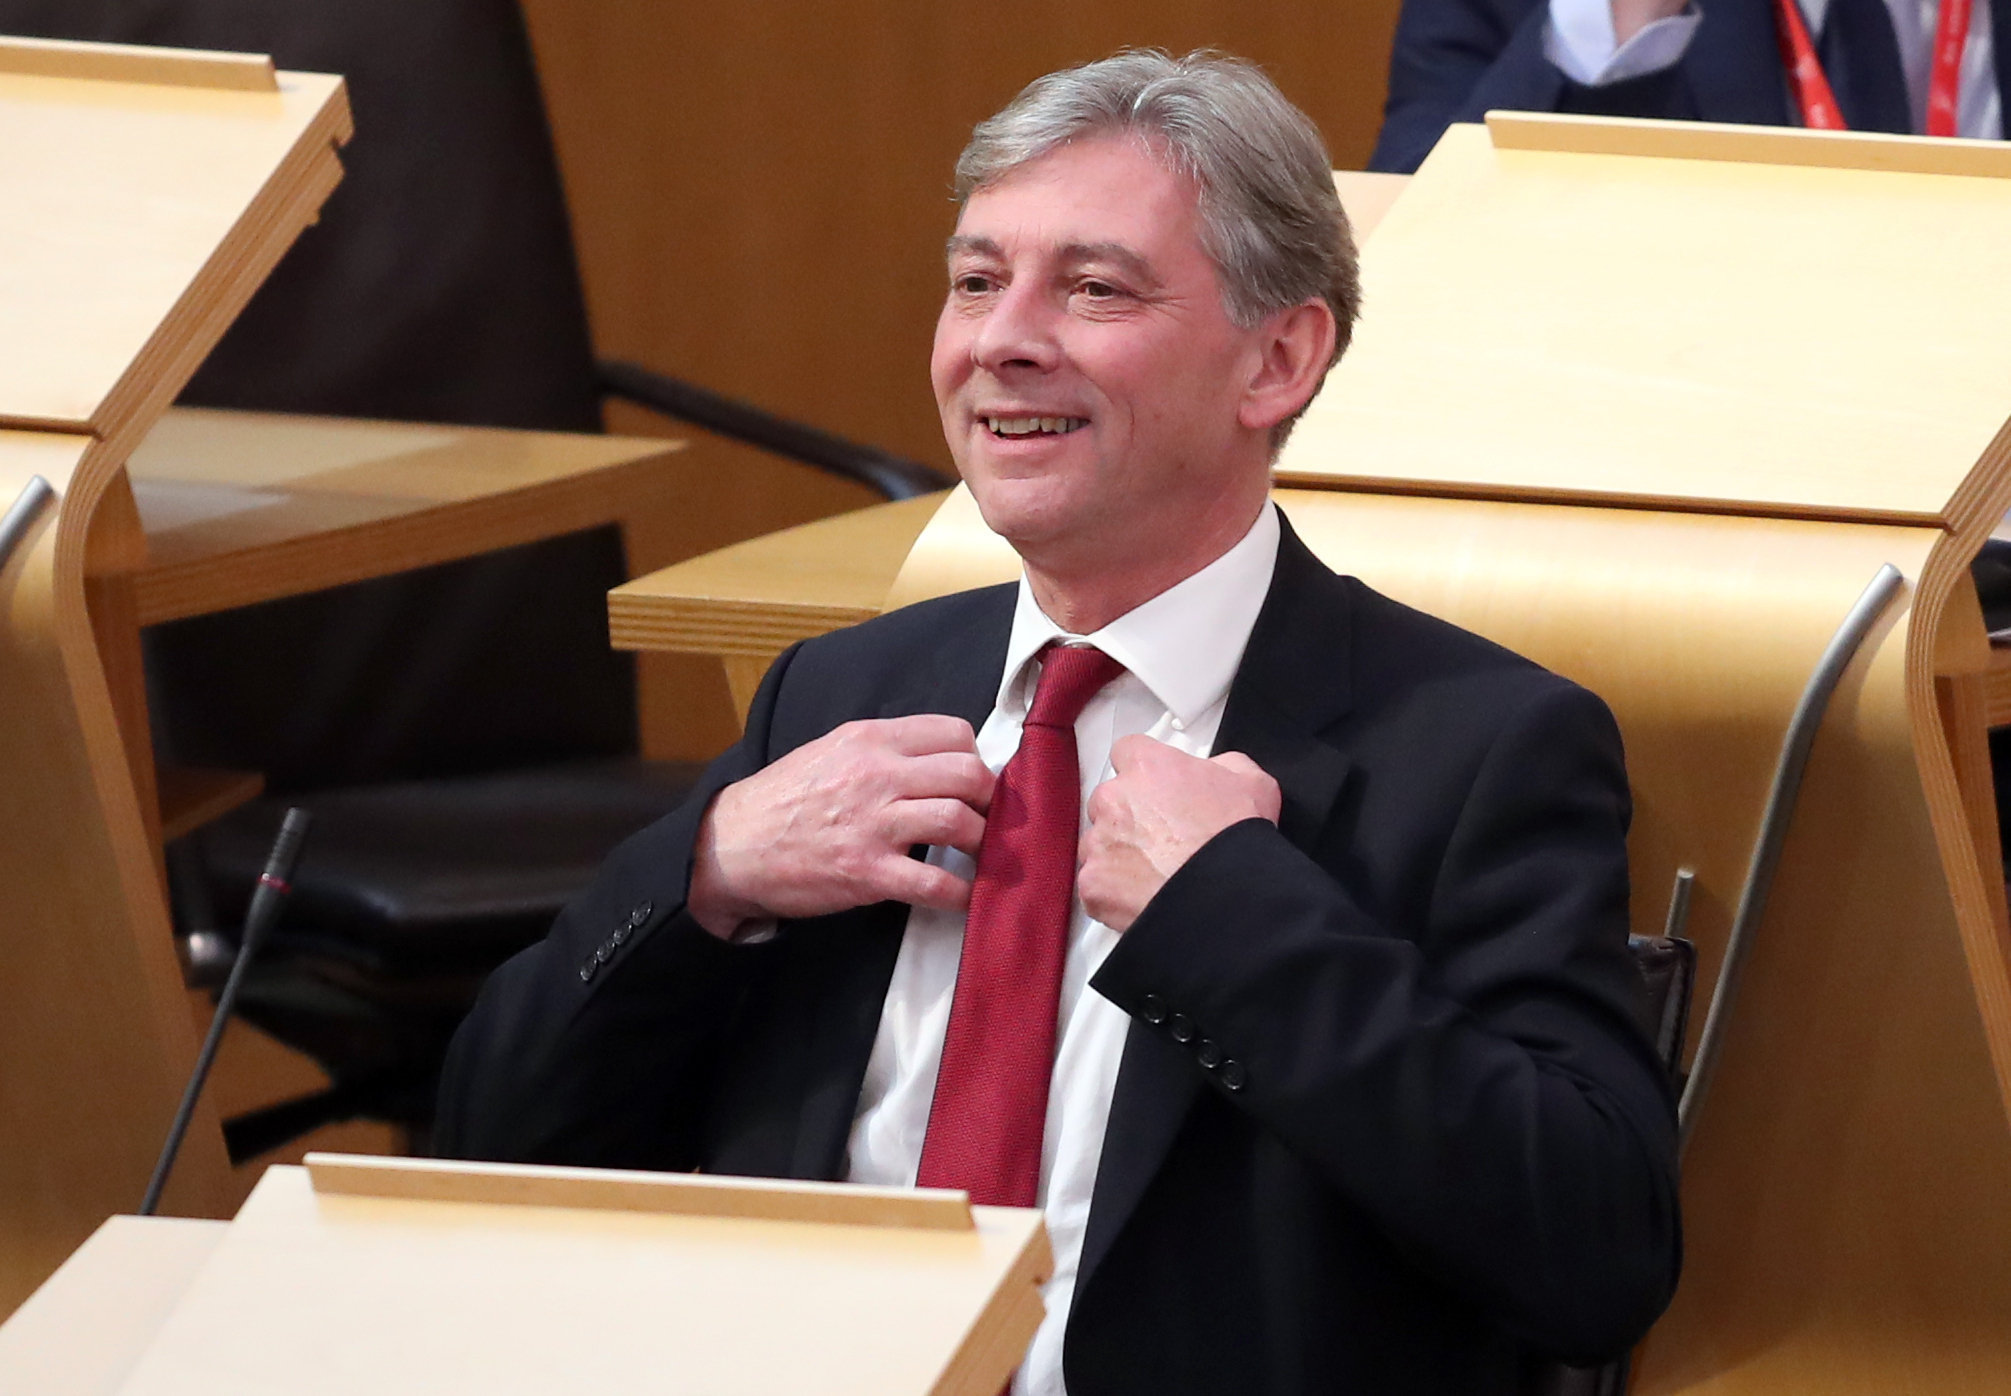 This is all going brilliantly: Richard Leonard